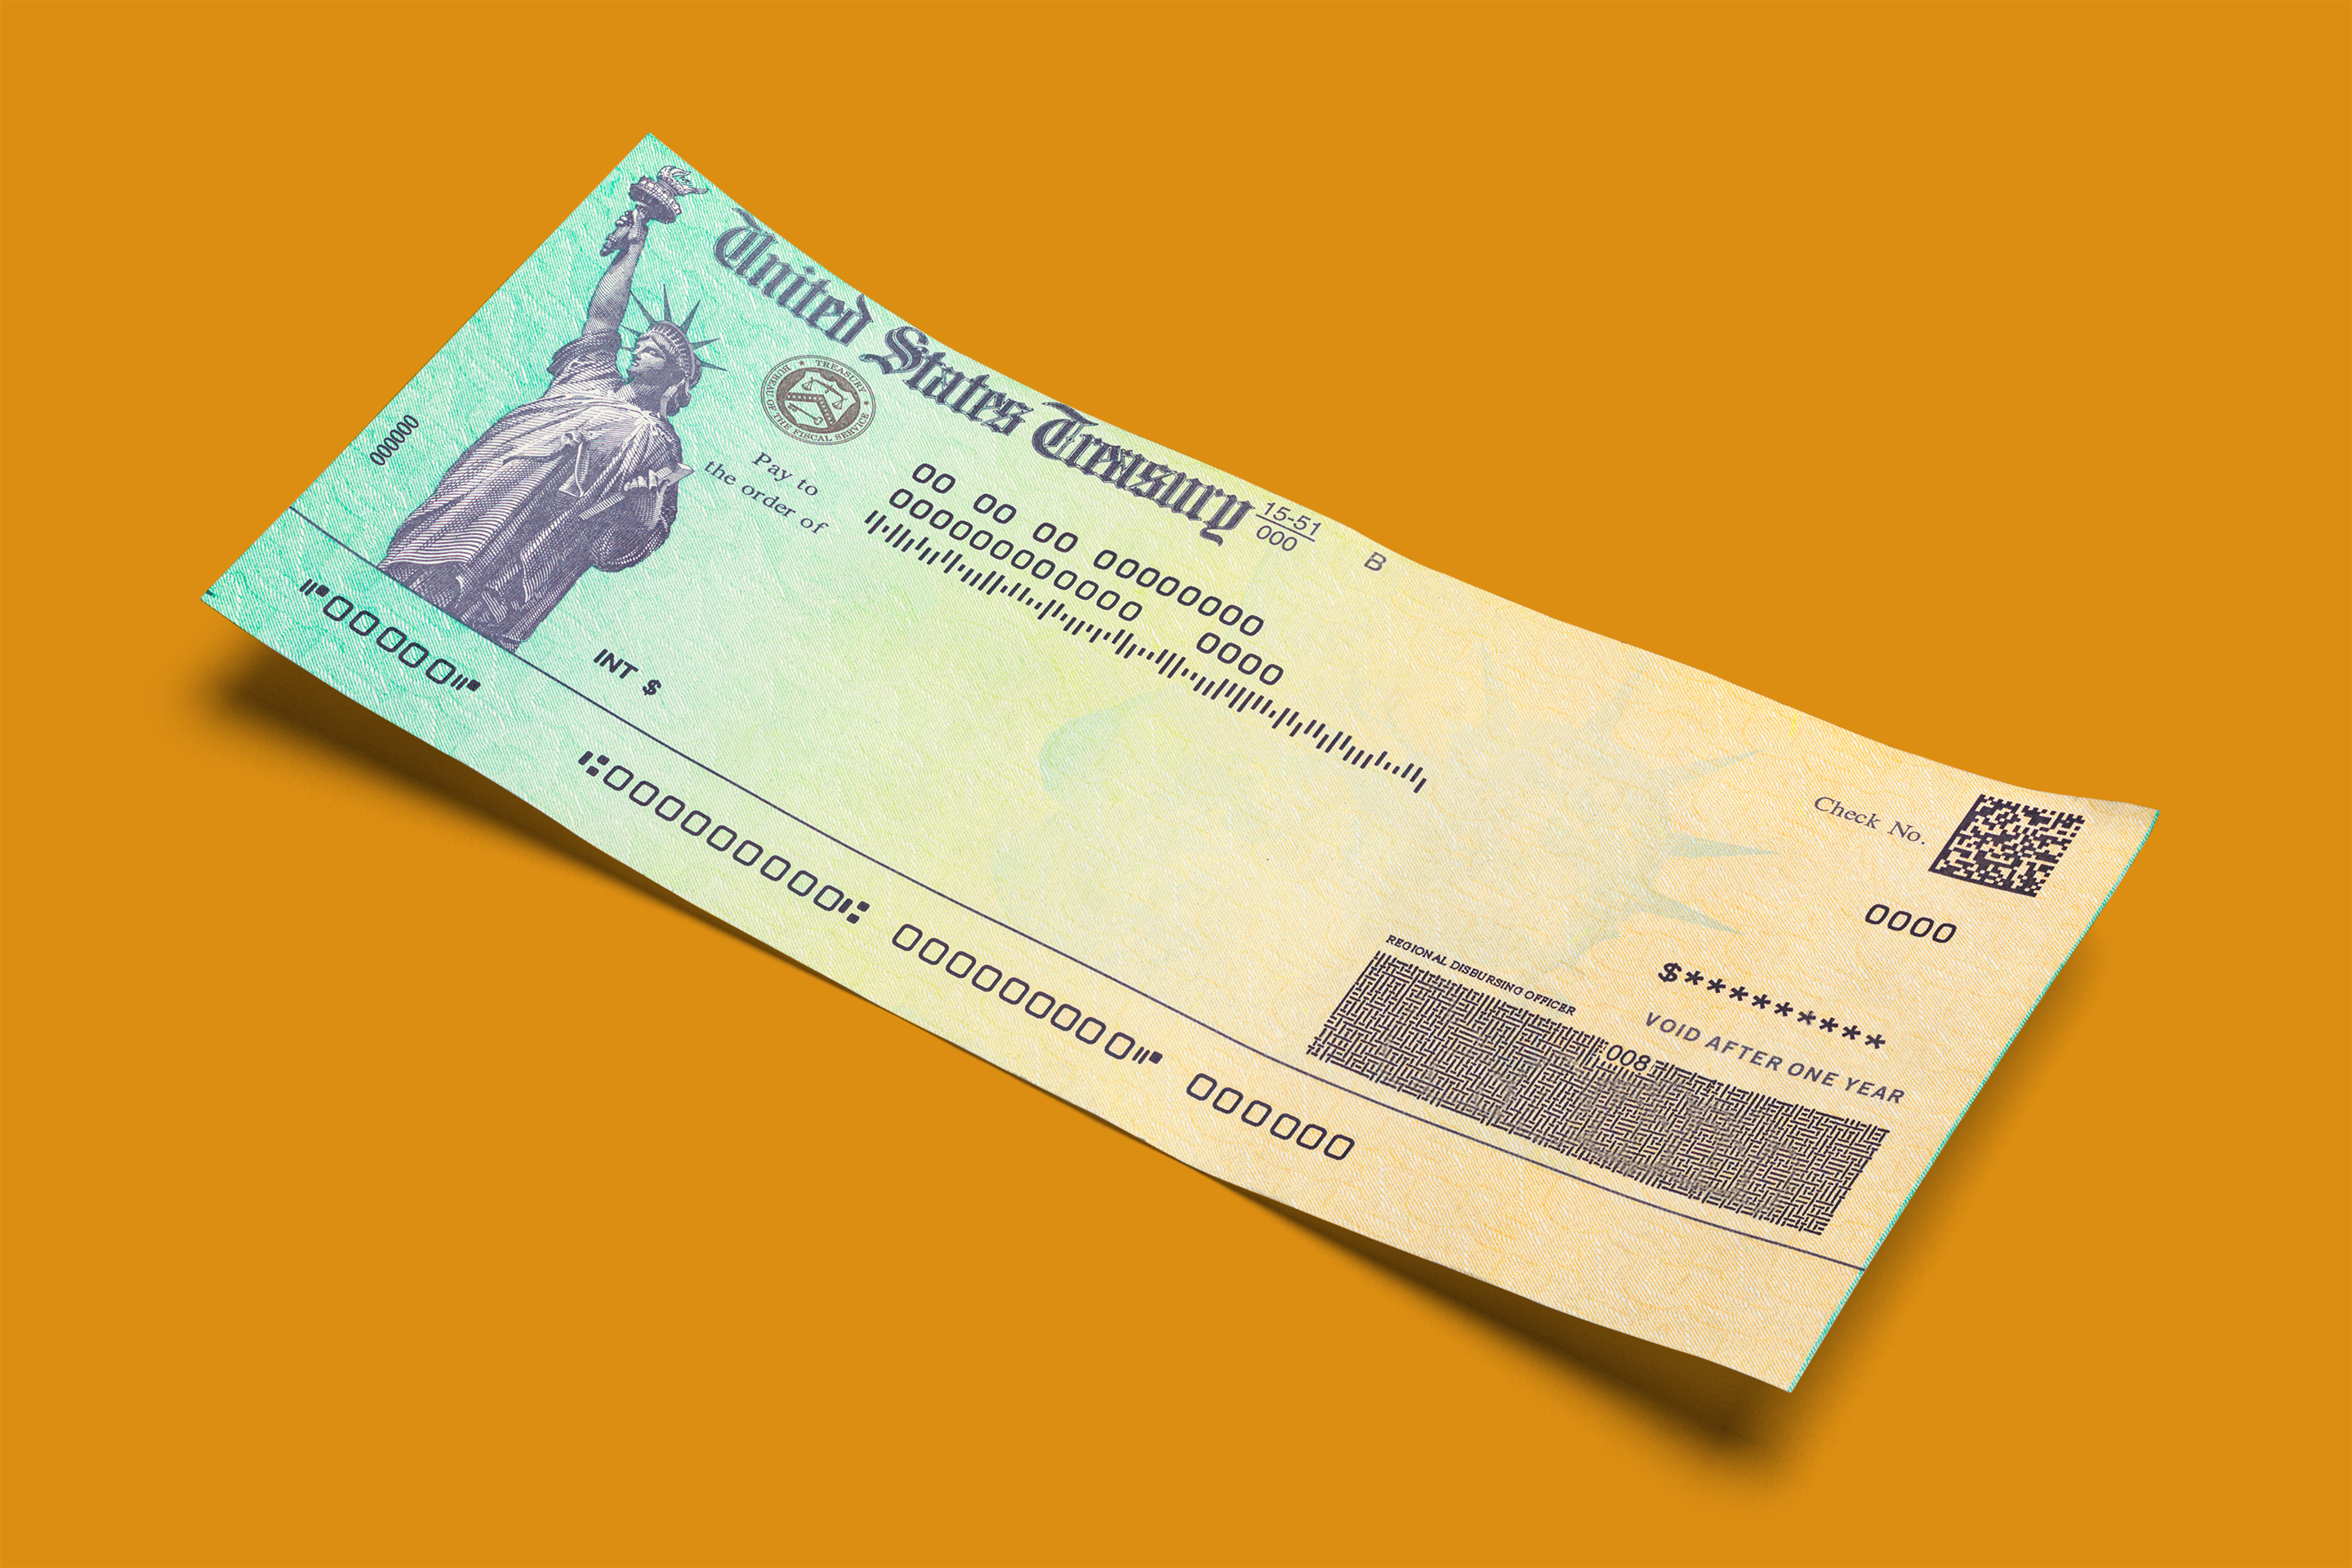 Still Haven't Received a $1,200 Stimulus Check? You Must Register This Week to Get the Money in 2020